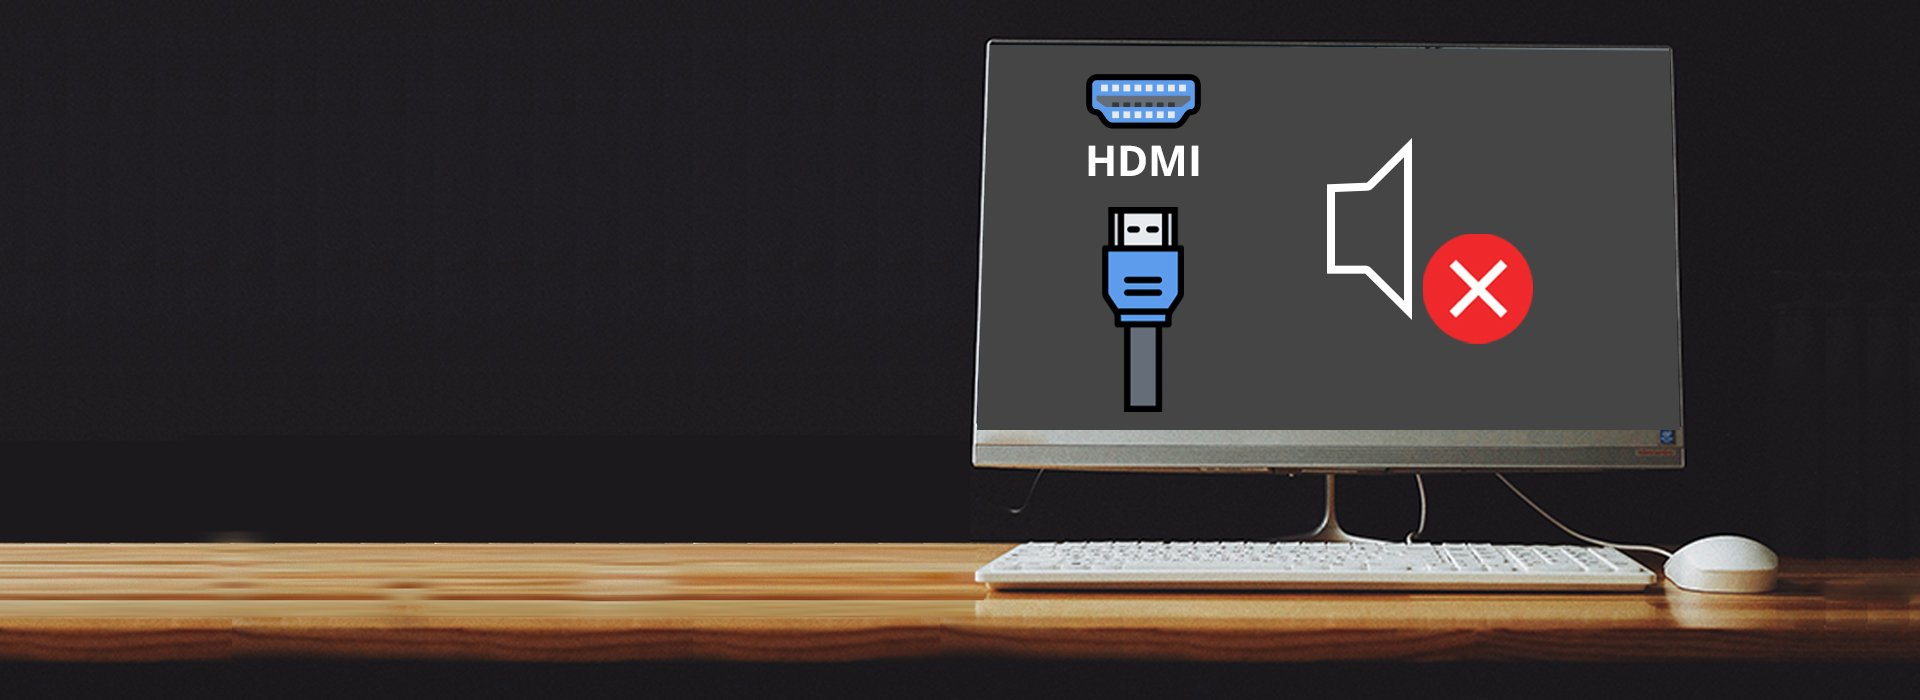 Easy fixing of HDMI No Sound after Connecting Computer to Monitor and TV - TOP methods to solve the problems - only best guides